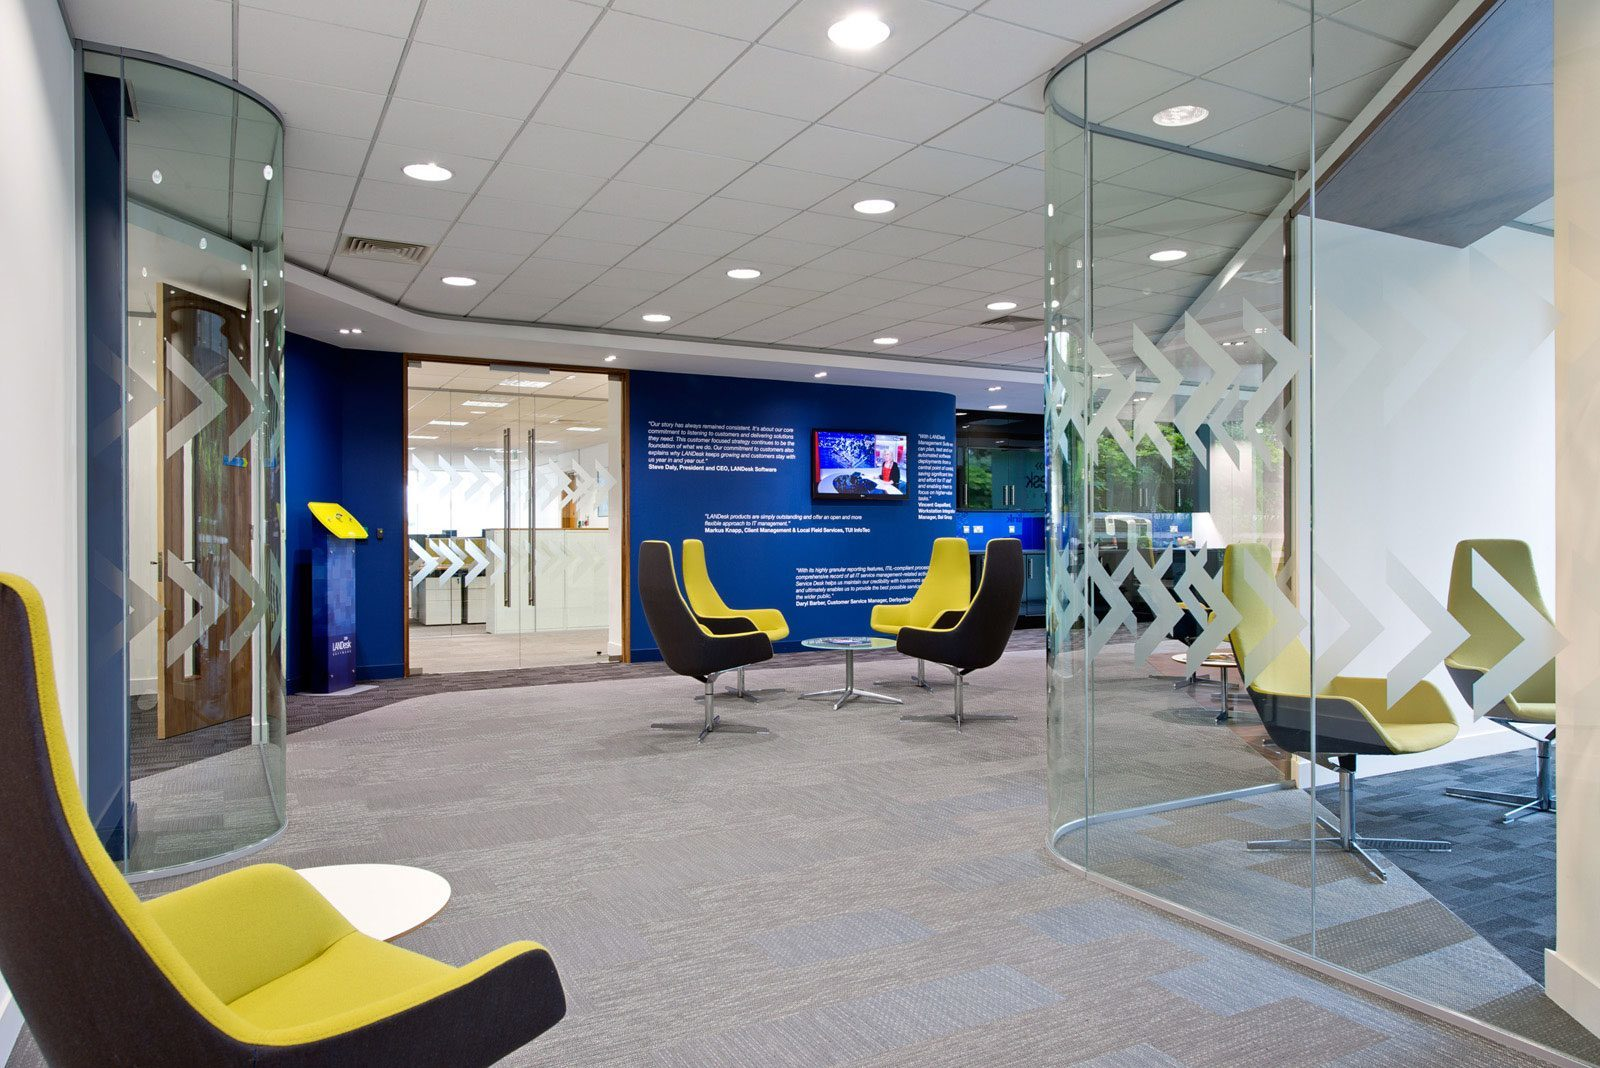 A Quick Look Inside LANDesk's Bracknell Offices